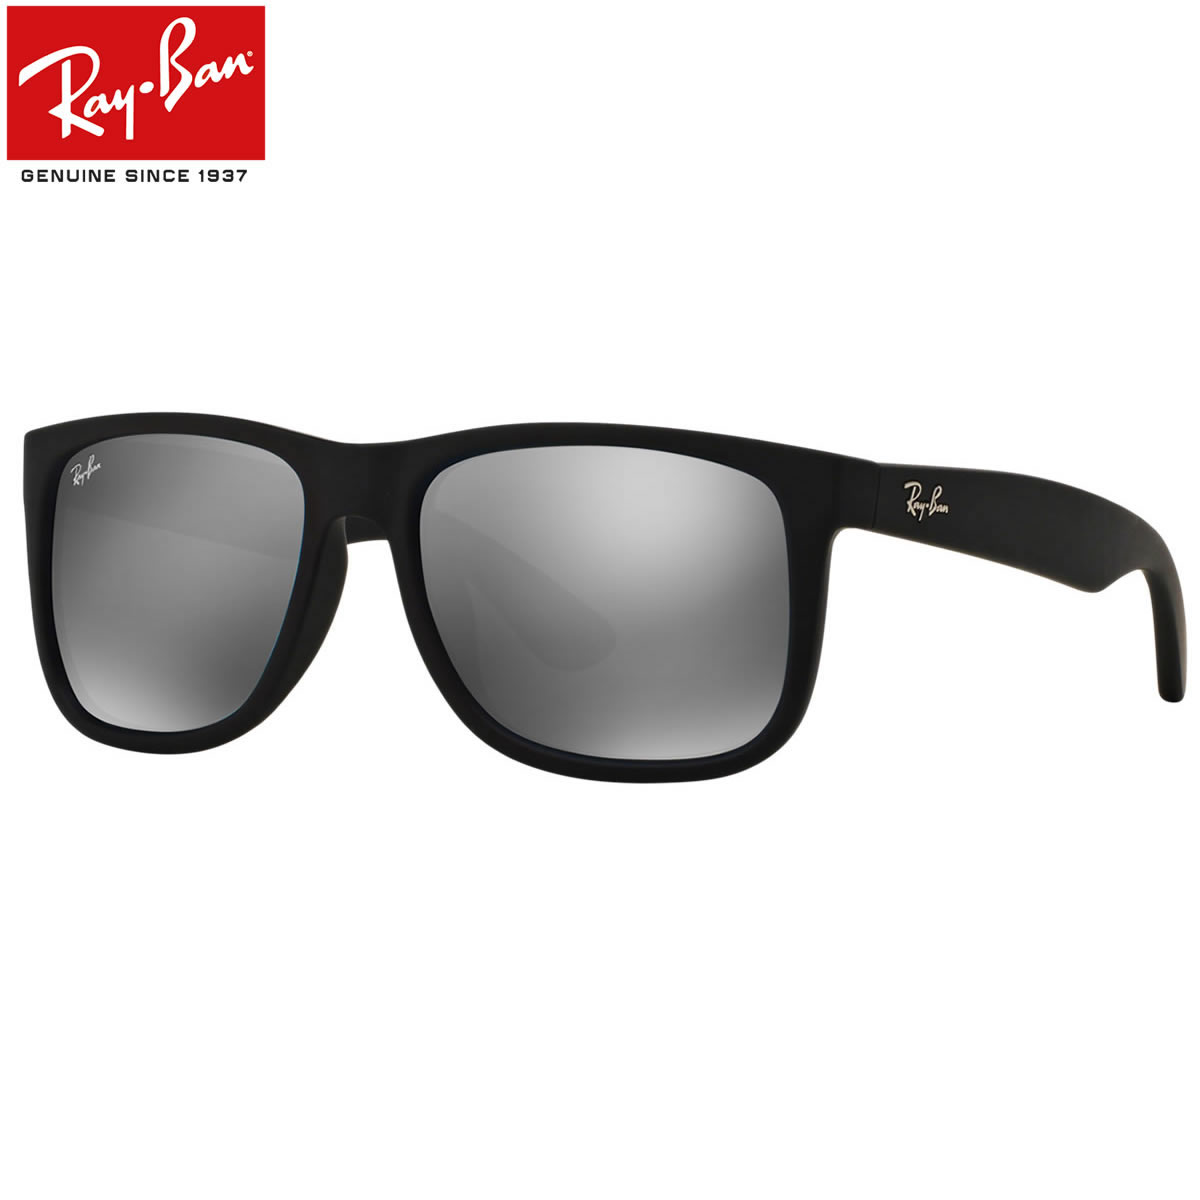 3067cfe421 RB4165F modification of the popular model of Ray-Ban